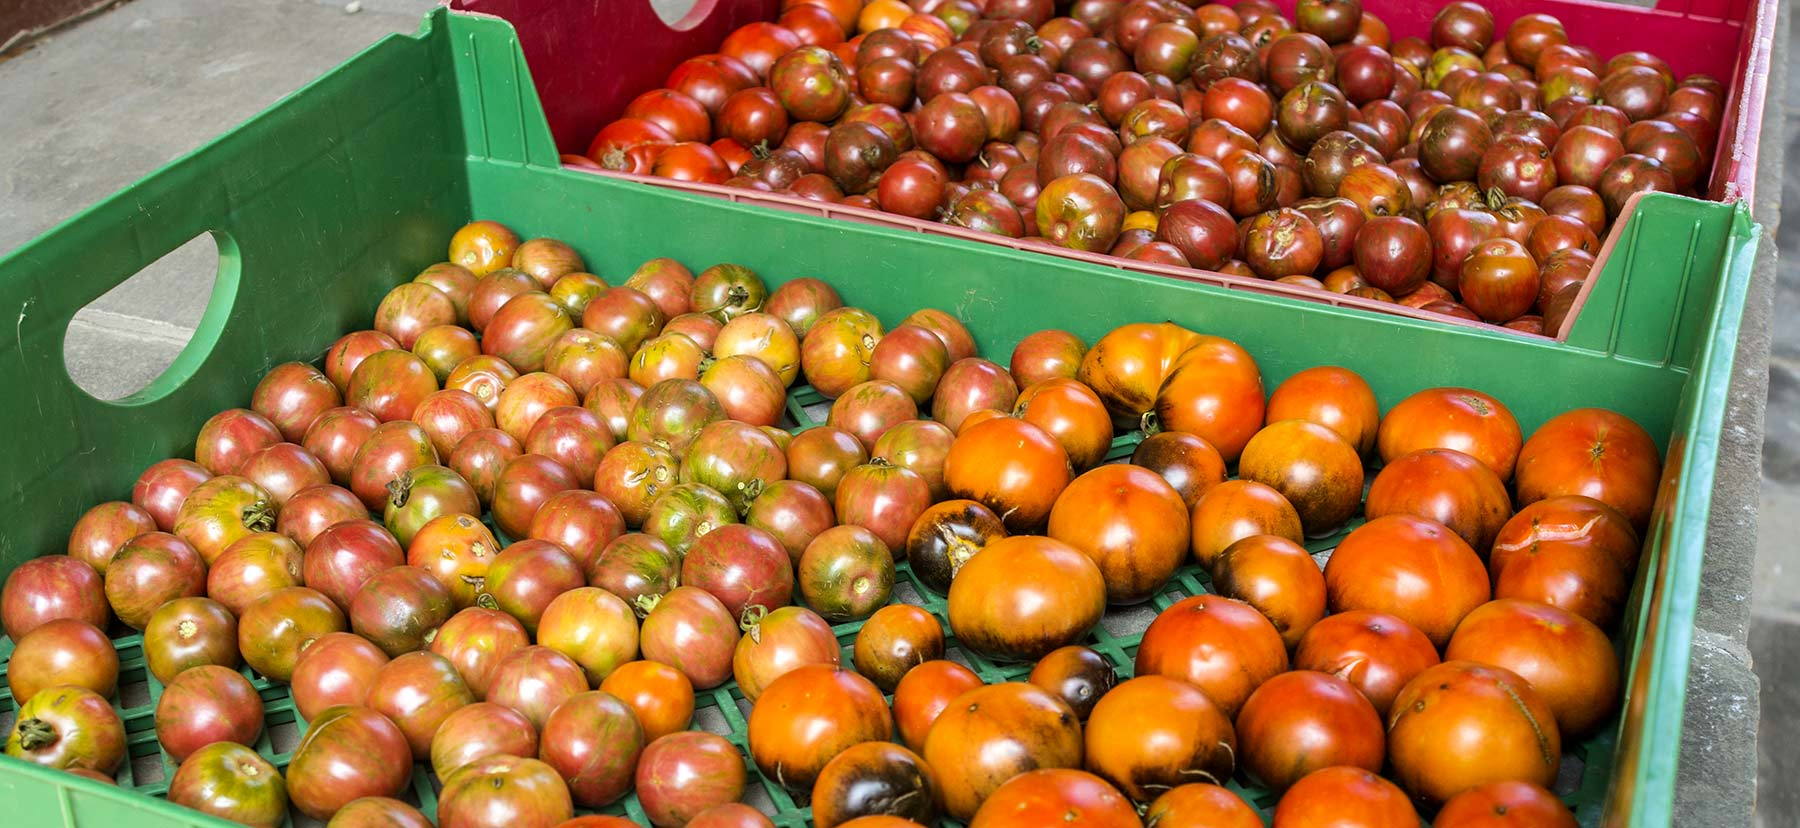 Hundreds of freshly harvested tomatoes grown on campus